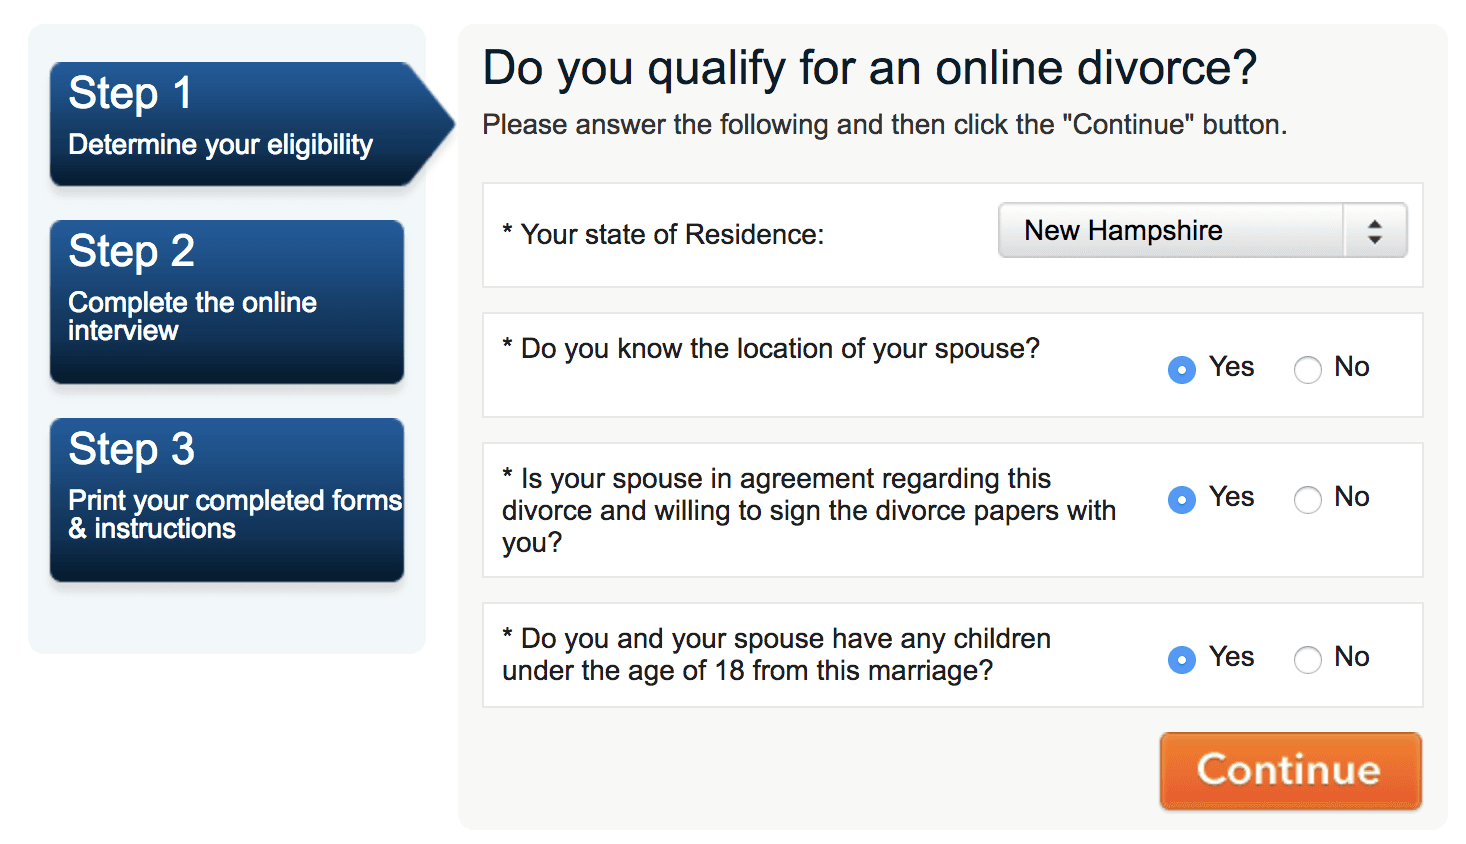 CompleteCase confirm your divorce qualifies